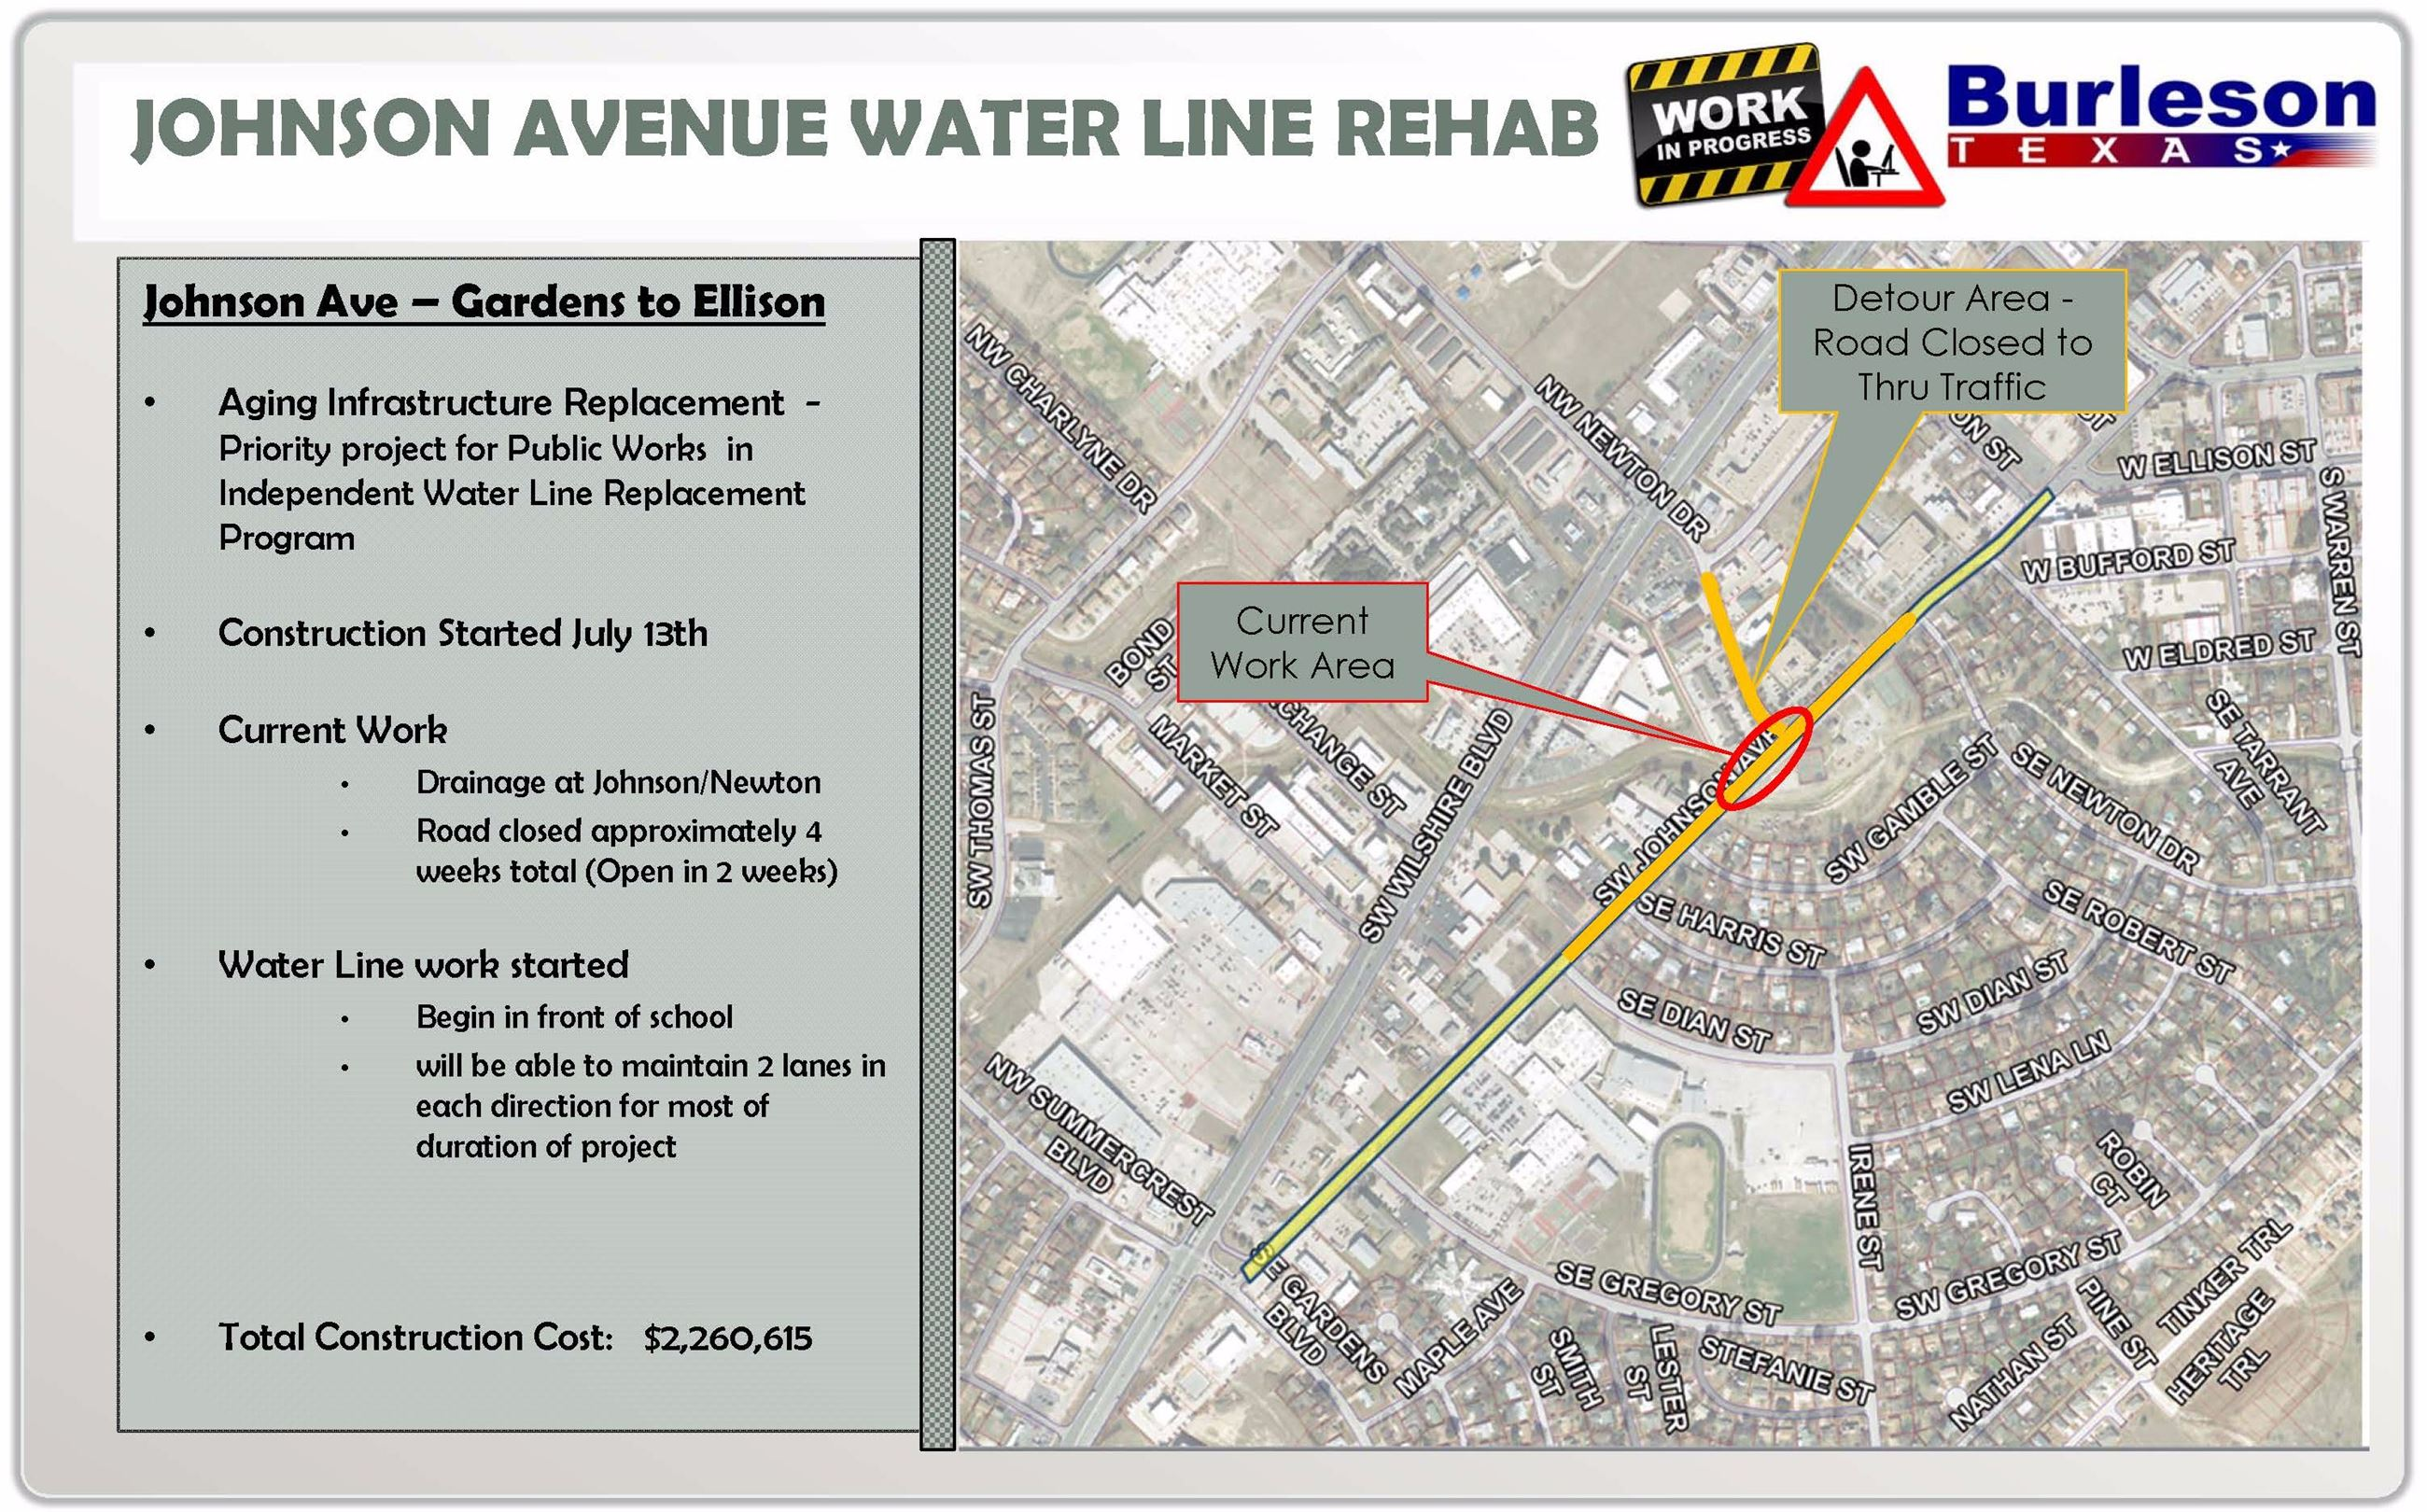 Johnson Ave Water Line Rehab map